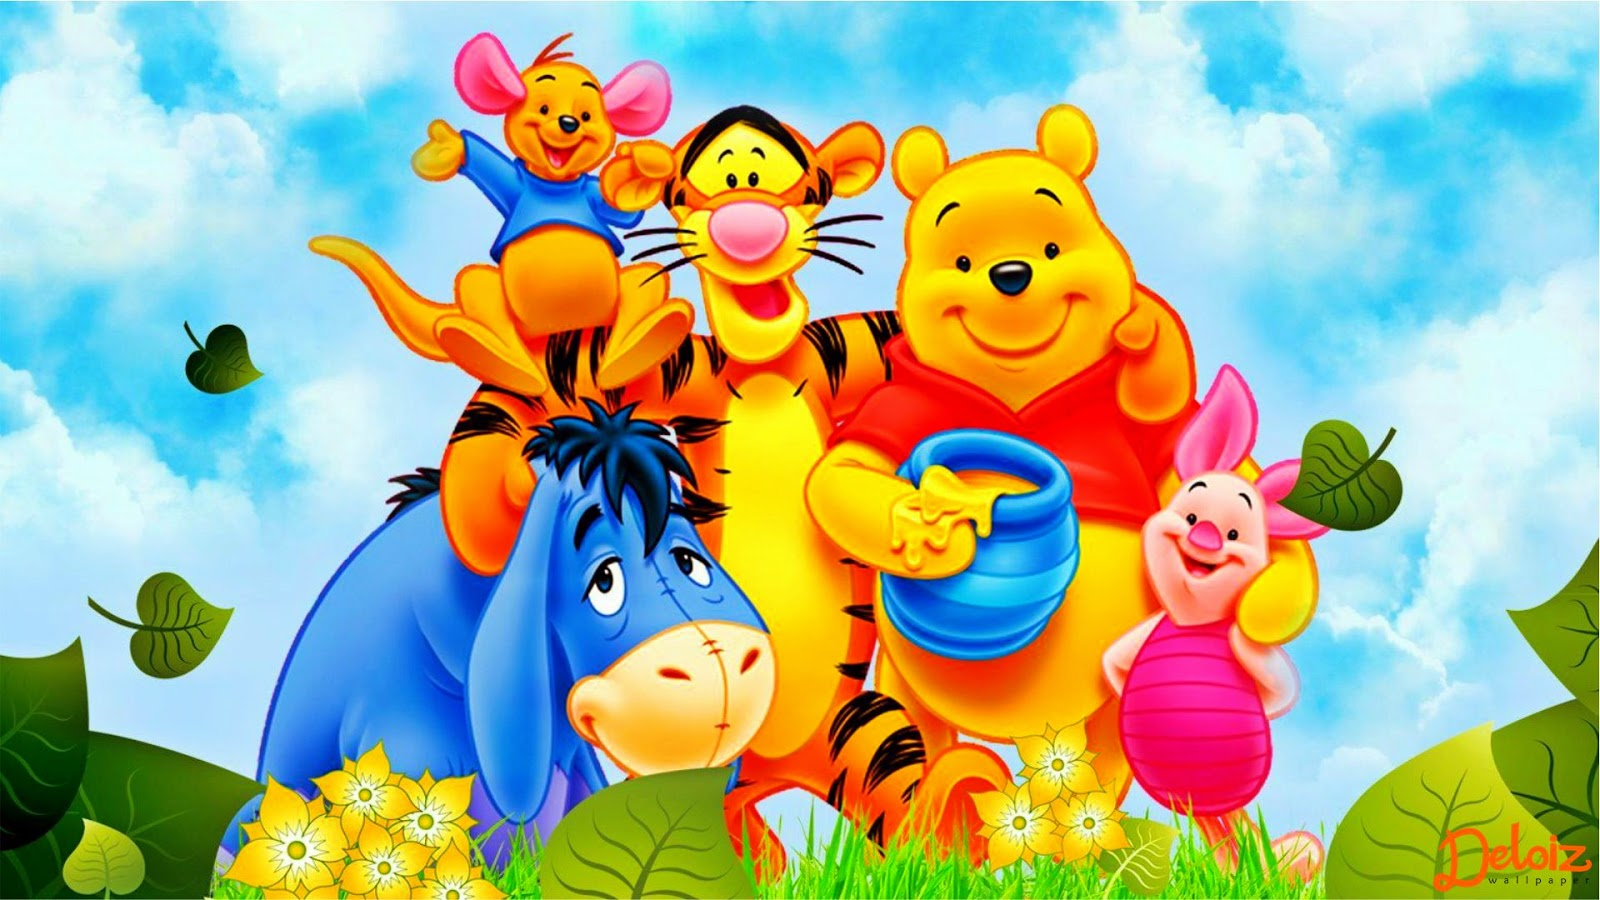 Wallpaper android iphone wallpaper winnie the pooh hd wallpaper winnie the pooh hd voltagebd Gallery